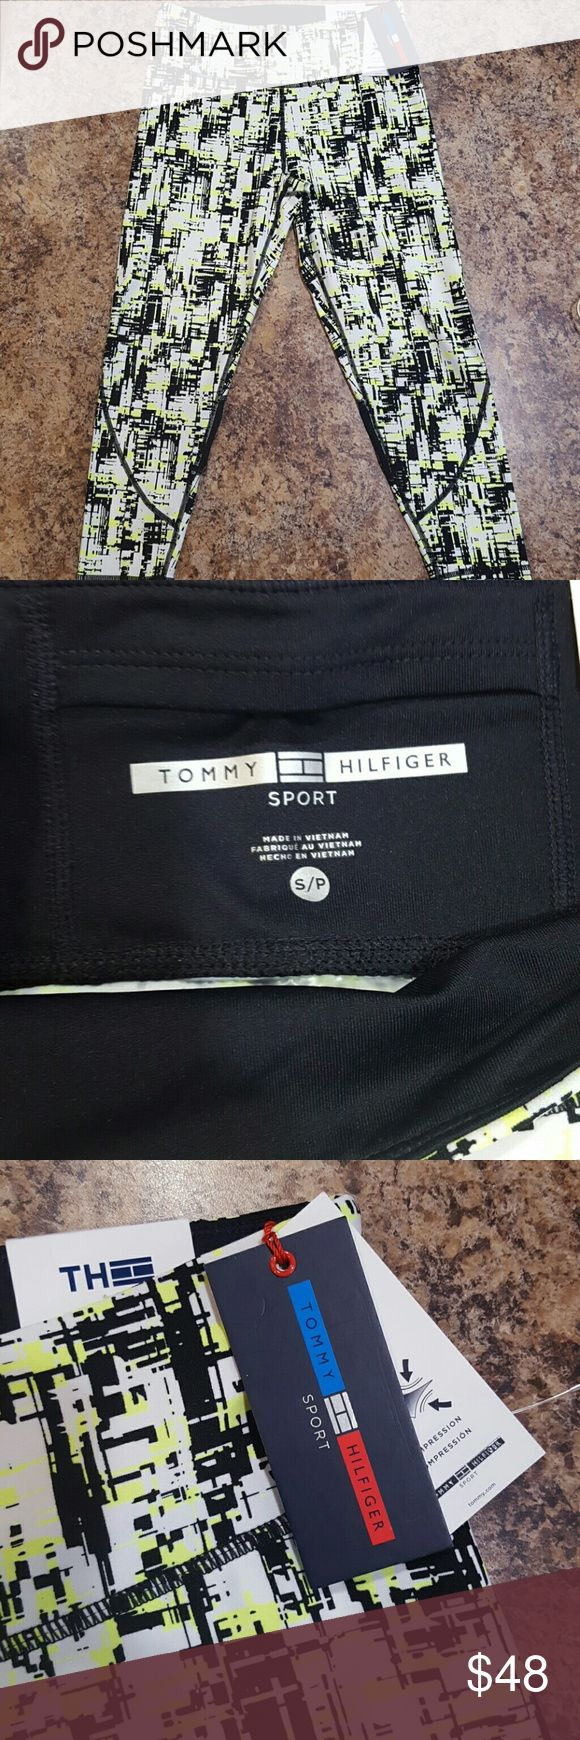 Nwt Tommy Hilfiger leggings New with tags  Tommy Hilfiger sport leggings  Size:small Tommy Hilfiger Pants Leggings